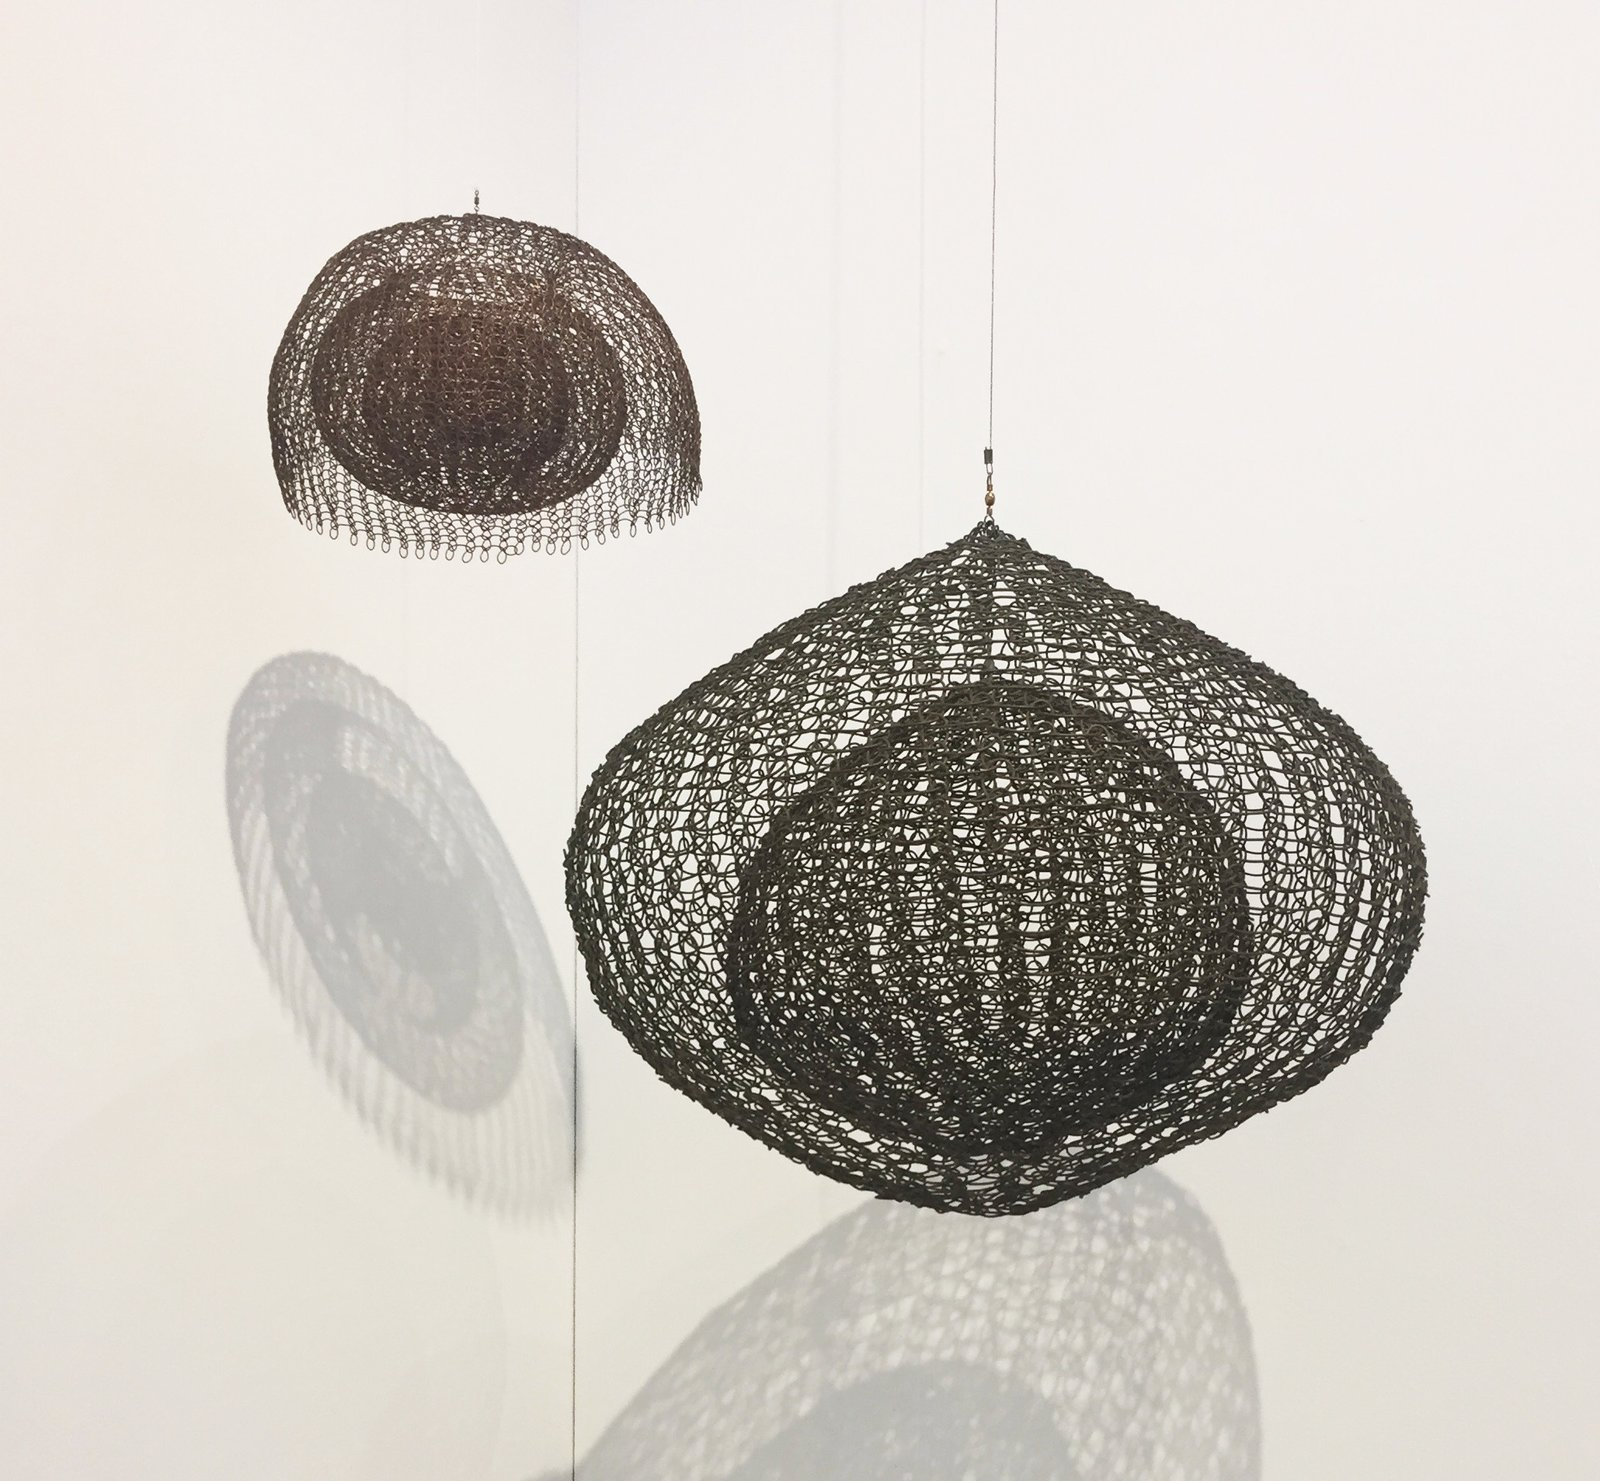 Based in New York, David Zwirner presented a hanging sculpture by Ruth Asawa (1926-2013), the internationally respected sculptor who first learned how to draw in a Japanese-American internment camp during World War II. Hailing from the 1980s, Untitled S.724 is a single-lobed hanging piece with four layers of continuous form within a form. Though it's made of oxidized copper wire, it gives the impression of being soft and moldable.  Photo 5 of 11 in Follow Us Through San Francisco's FOG Design & Art Fair